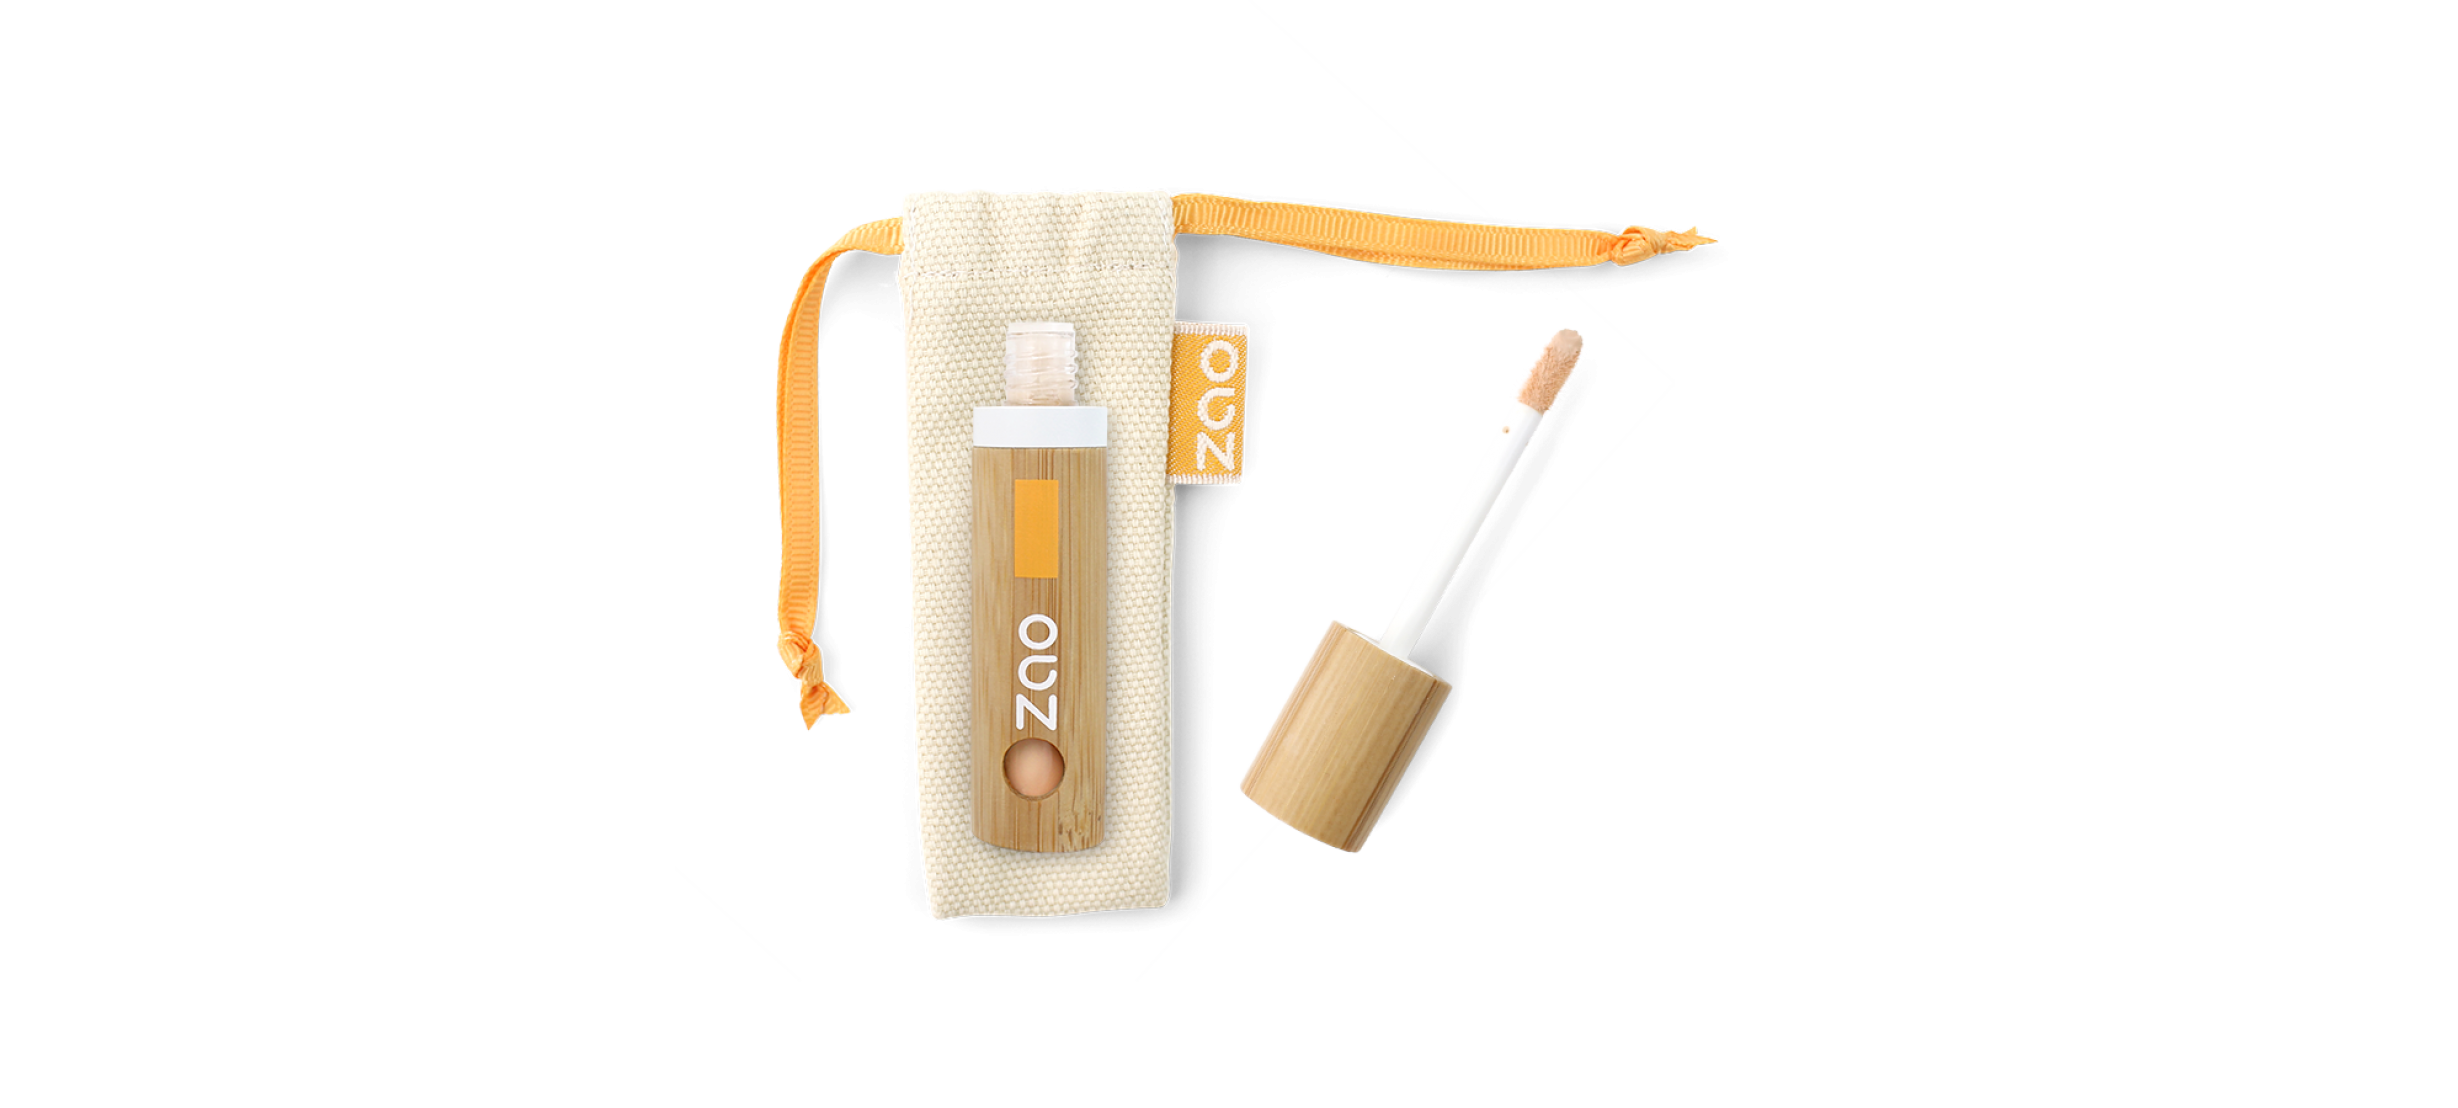 ЦВЯТ Light touch complexion: 723 Peach